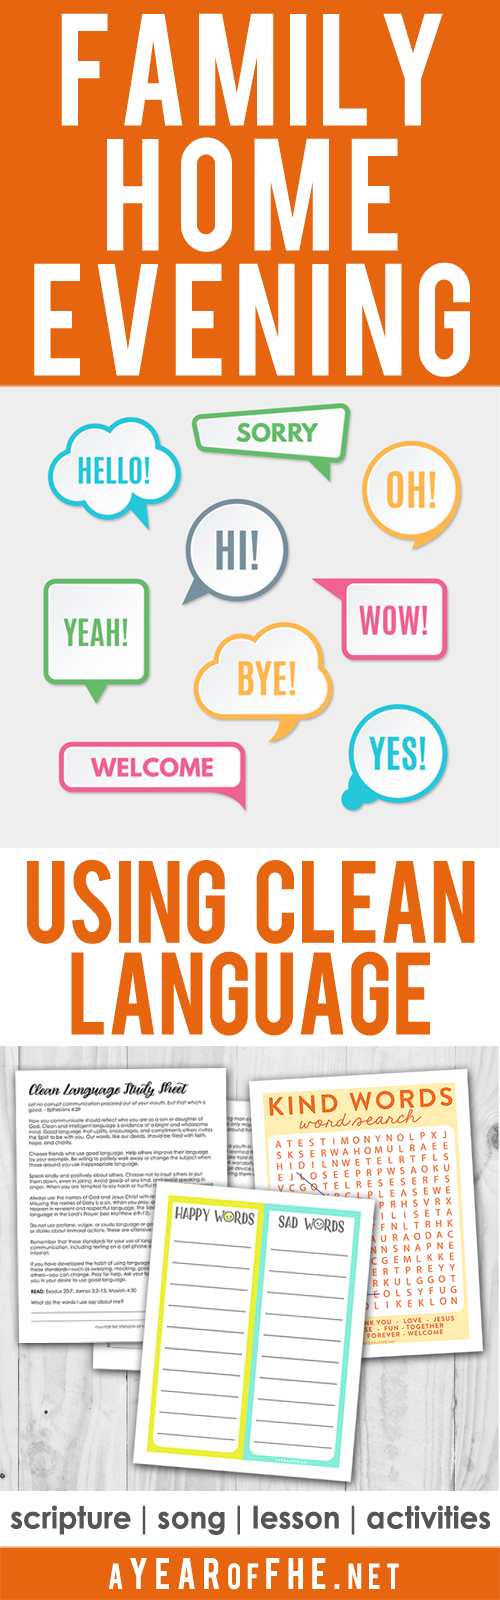 A Year of FHE: Year 03 / Lesson 19: Using Clean Language